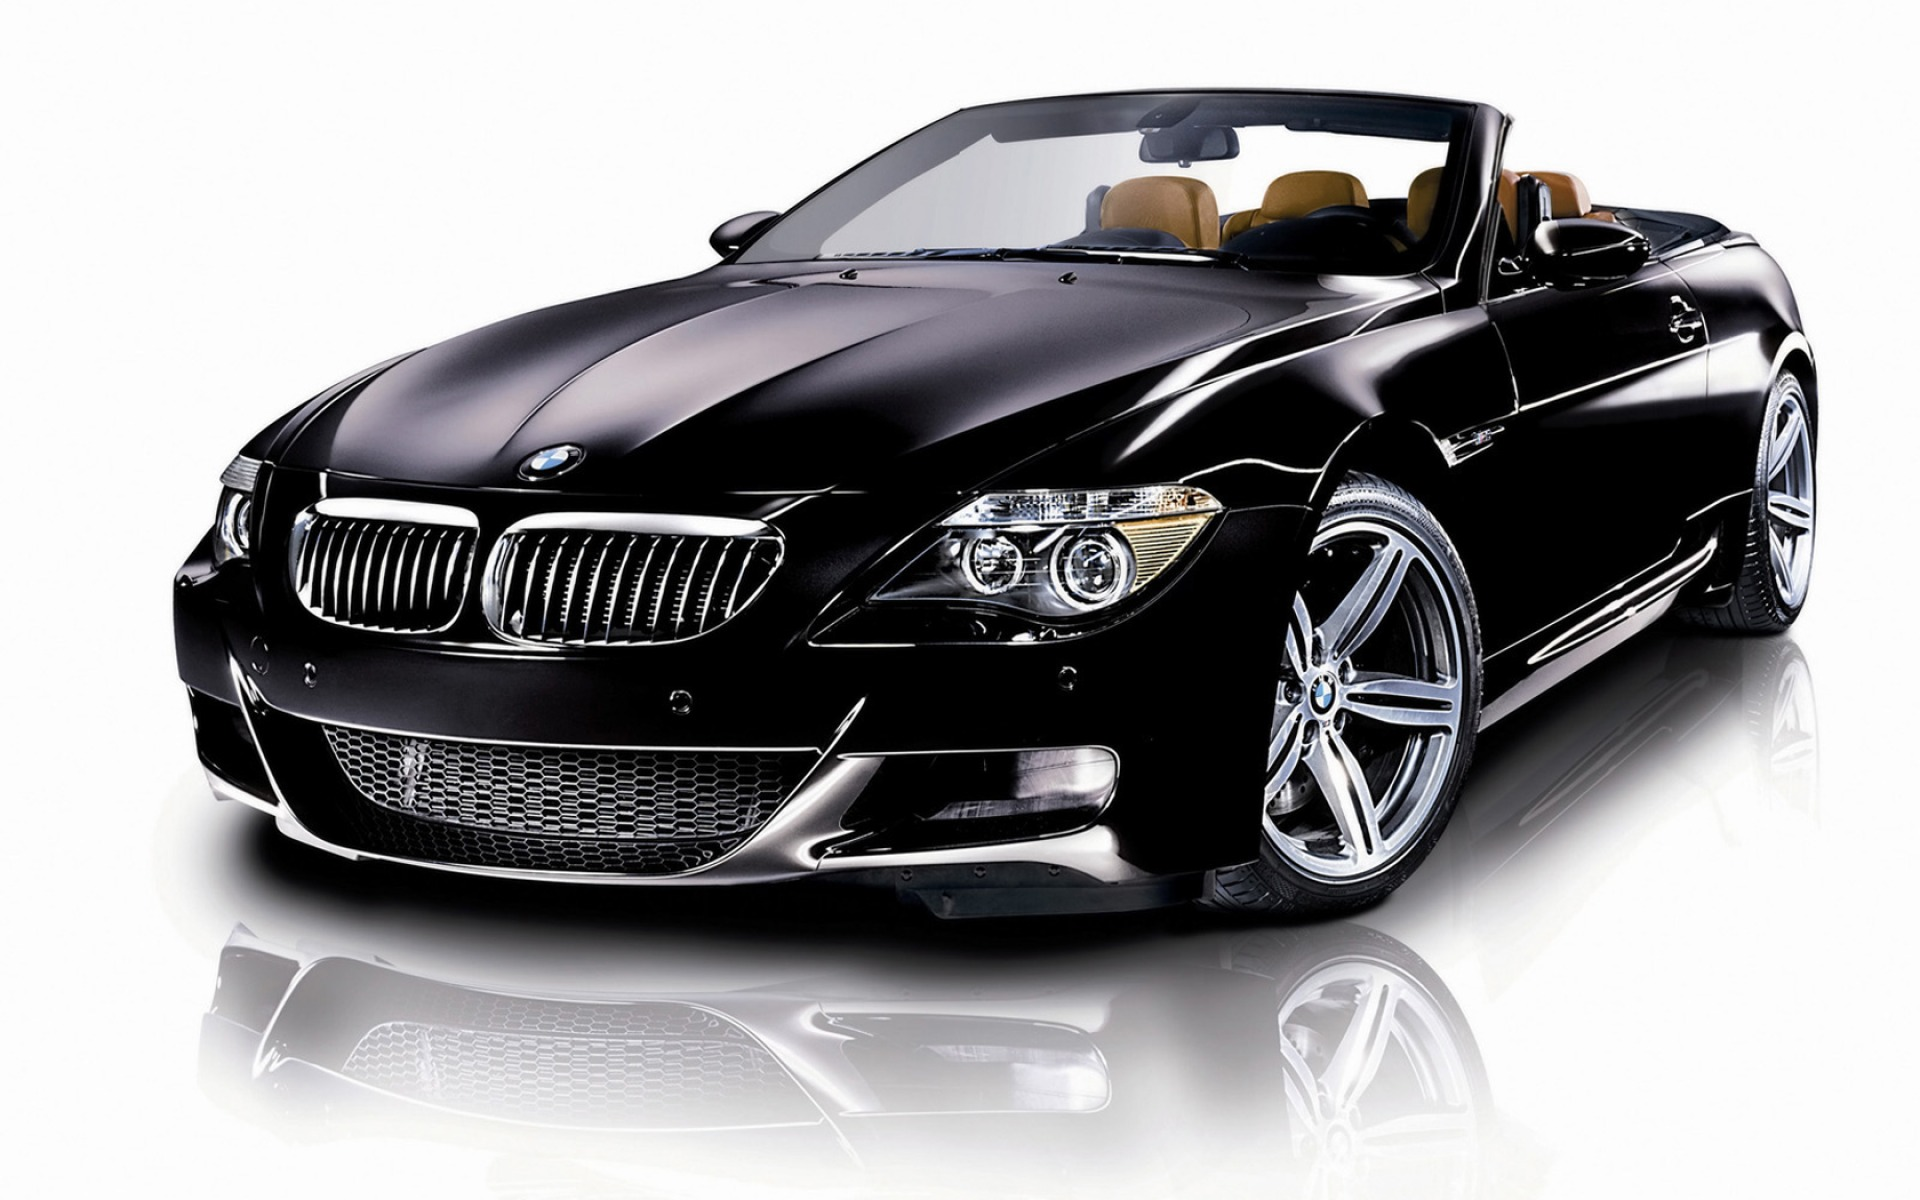 Ultrablogus  Winsome Bmw Car Wallpaper Wallpapers For Free Download About   With Glamorous Bmw M Convertible Wallpaper Bmw Cars With Amusing Bmw Interior Light Package Also Audi Q Sport Interior Package In Addition Honda Truffle Interior And Van Bike Rack Interior As Well As Honda Ek Interior Additionally Interior Detail Car From Allfreedownloadcom With Ultrablogus  Glamorous Bmw Car Wallpaper Wallpapers For Free Download About   With Amusing Bmw M Convertible Wallpaper Bmw Cars And Winsome Bmw Interior Light Package Also Audi Q Sport Interior Package In Addition Honda Truffle Interior From Allfreedownloadcom